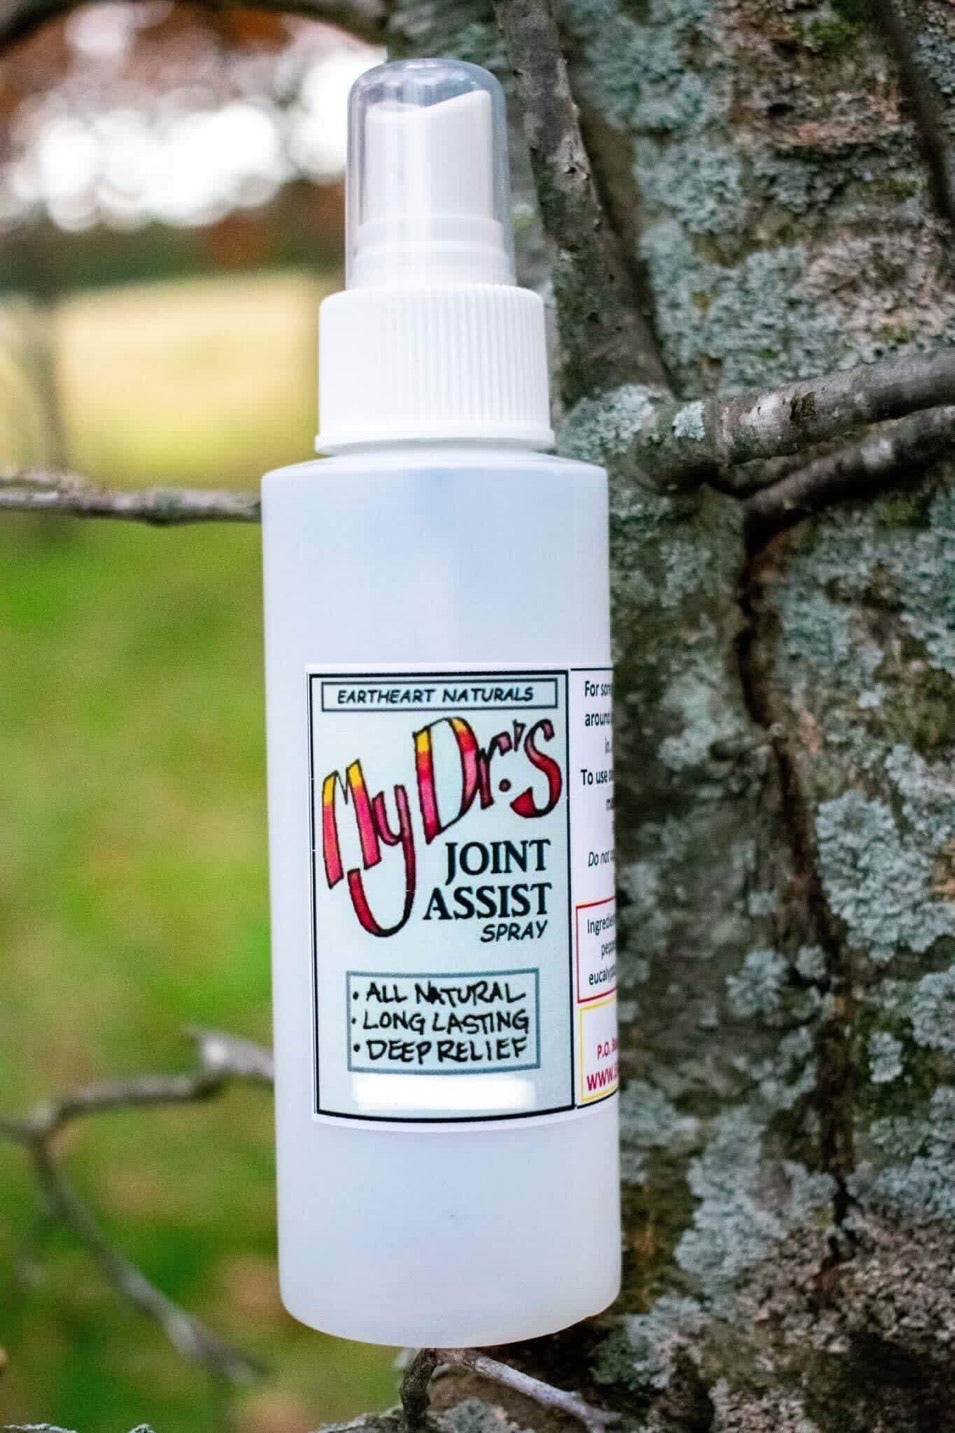 My Dr.'s Joint Assist Chiropractic Pain Spray 1 oz